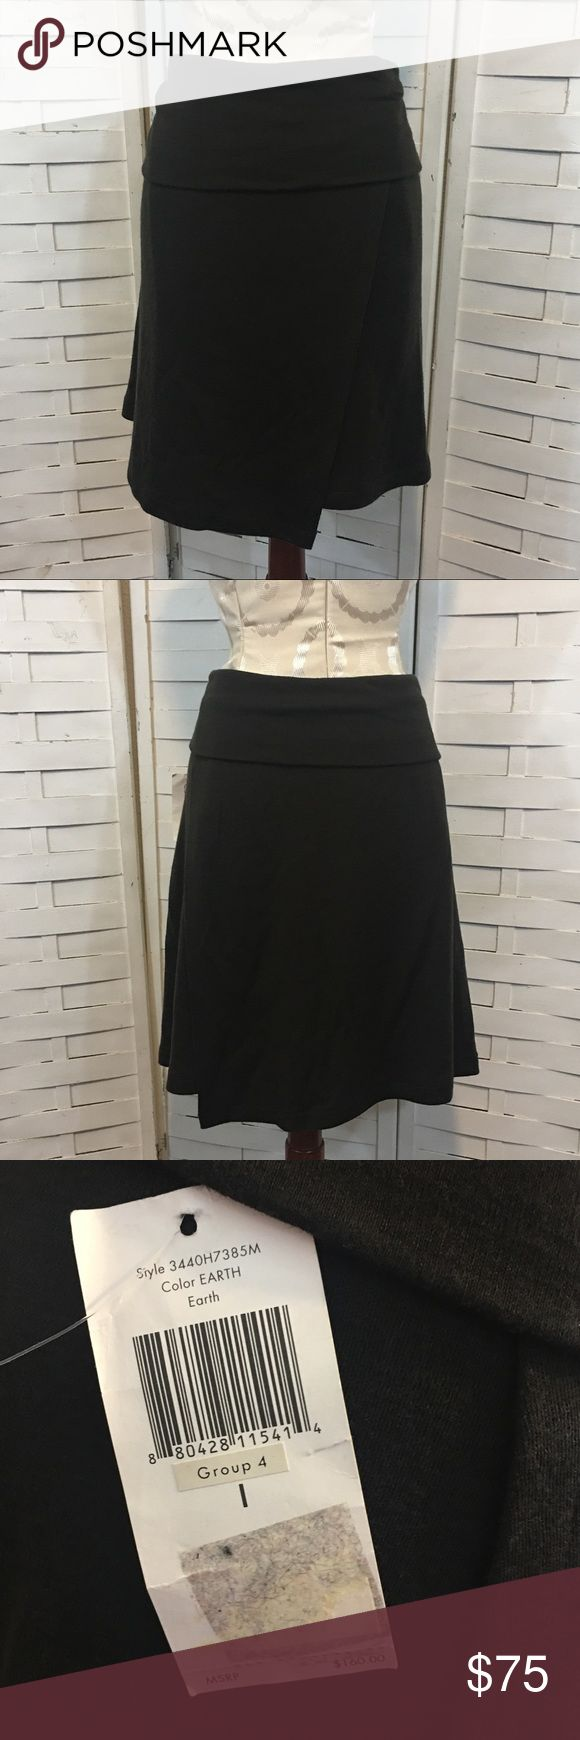 NWT Calvin Klein wool skirt N.365 New with tags attached skirt! Beautiful rich brown color! 100% wool! Gray for fall and winter. It has a unique asymmetrical hem and a fold over waist. No flaws. Calvin Klein Skirts